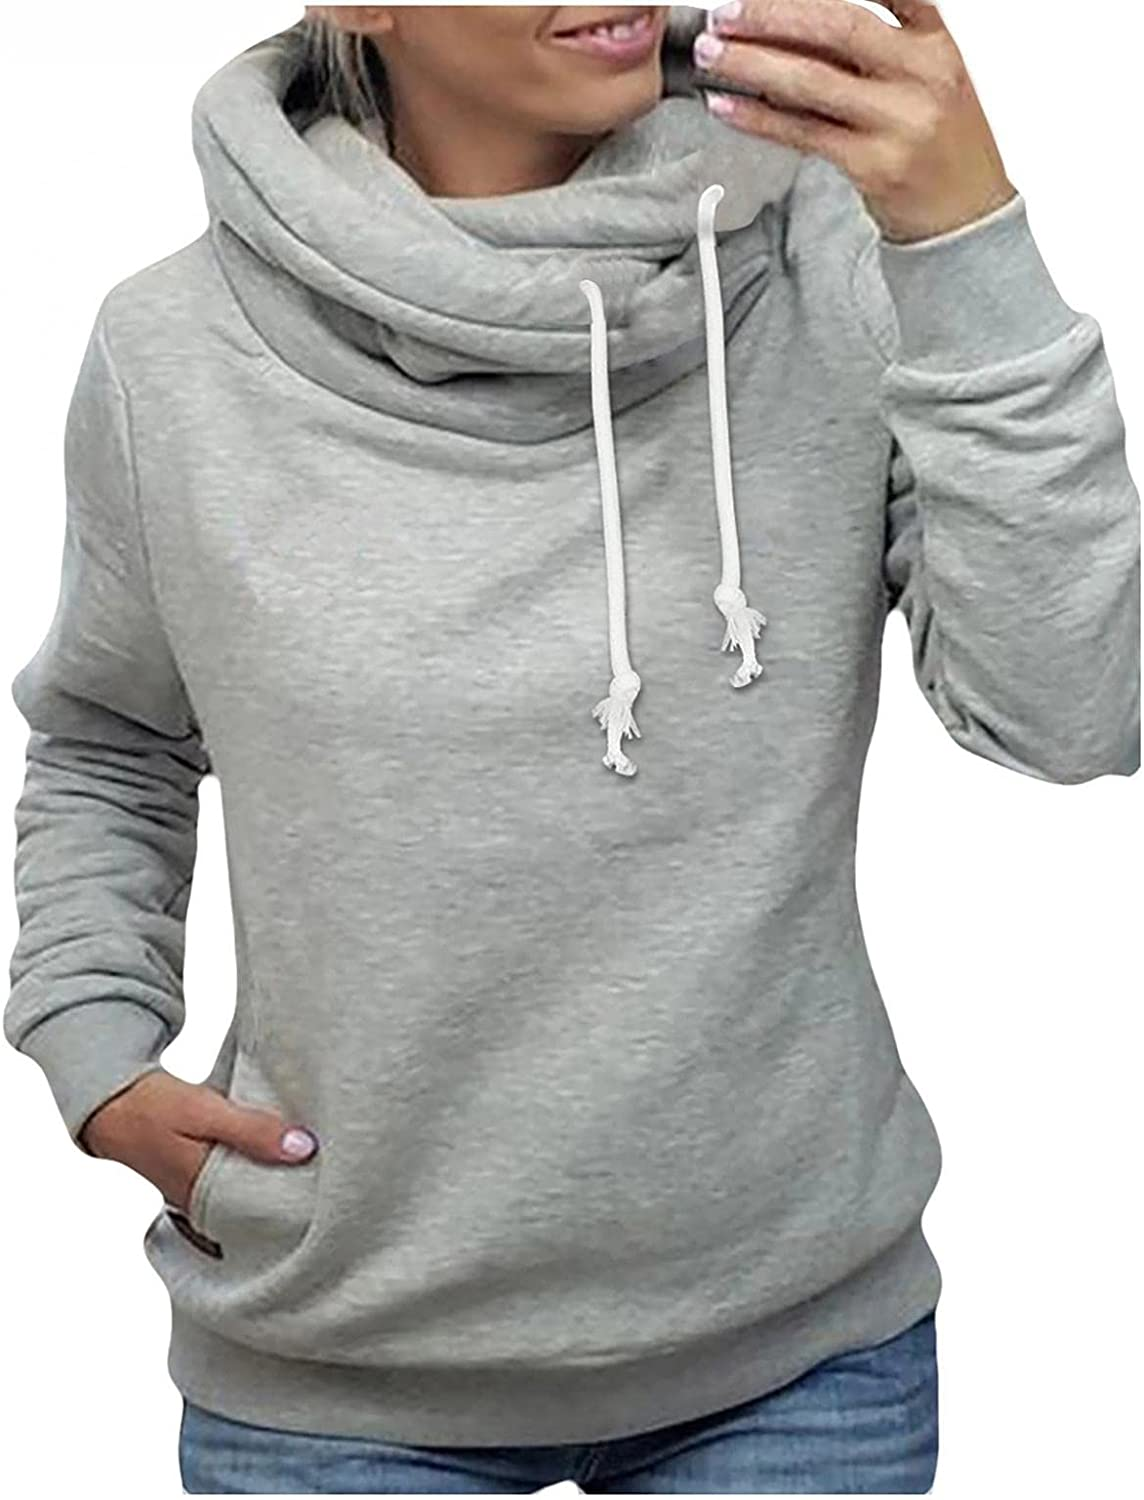 UOCUFY Hoodies for Women Pullover,Drawstring Turtle Neck Sweatshirts Long Sleeve Hooded Warm Winter Blouses with Pocket